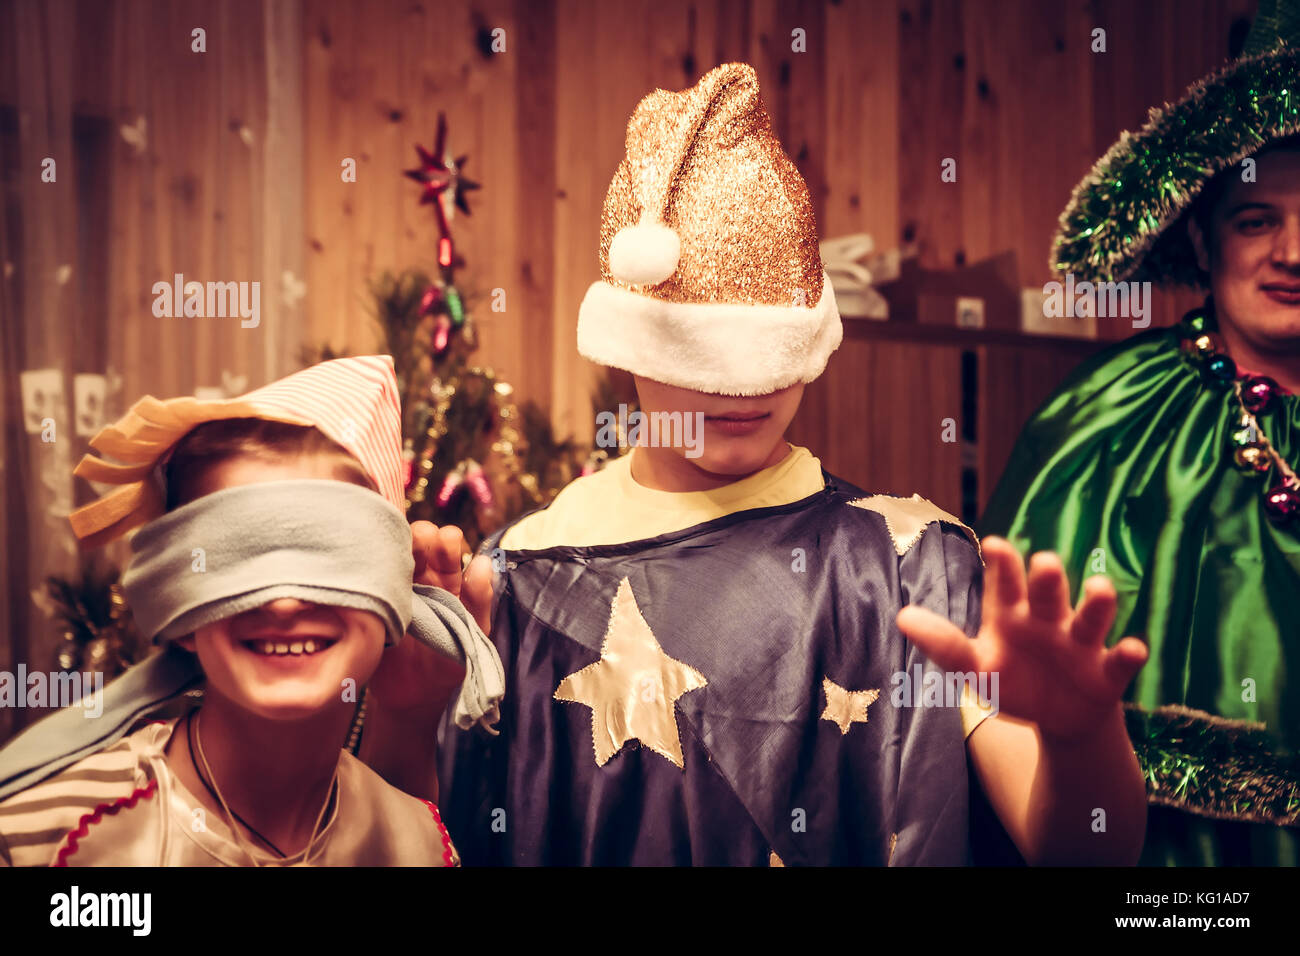 Children carnival party during Christmas holidays celebration - Stock Image